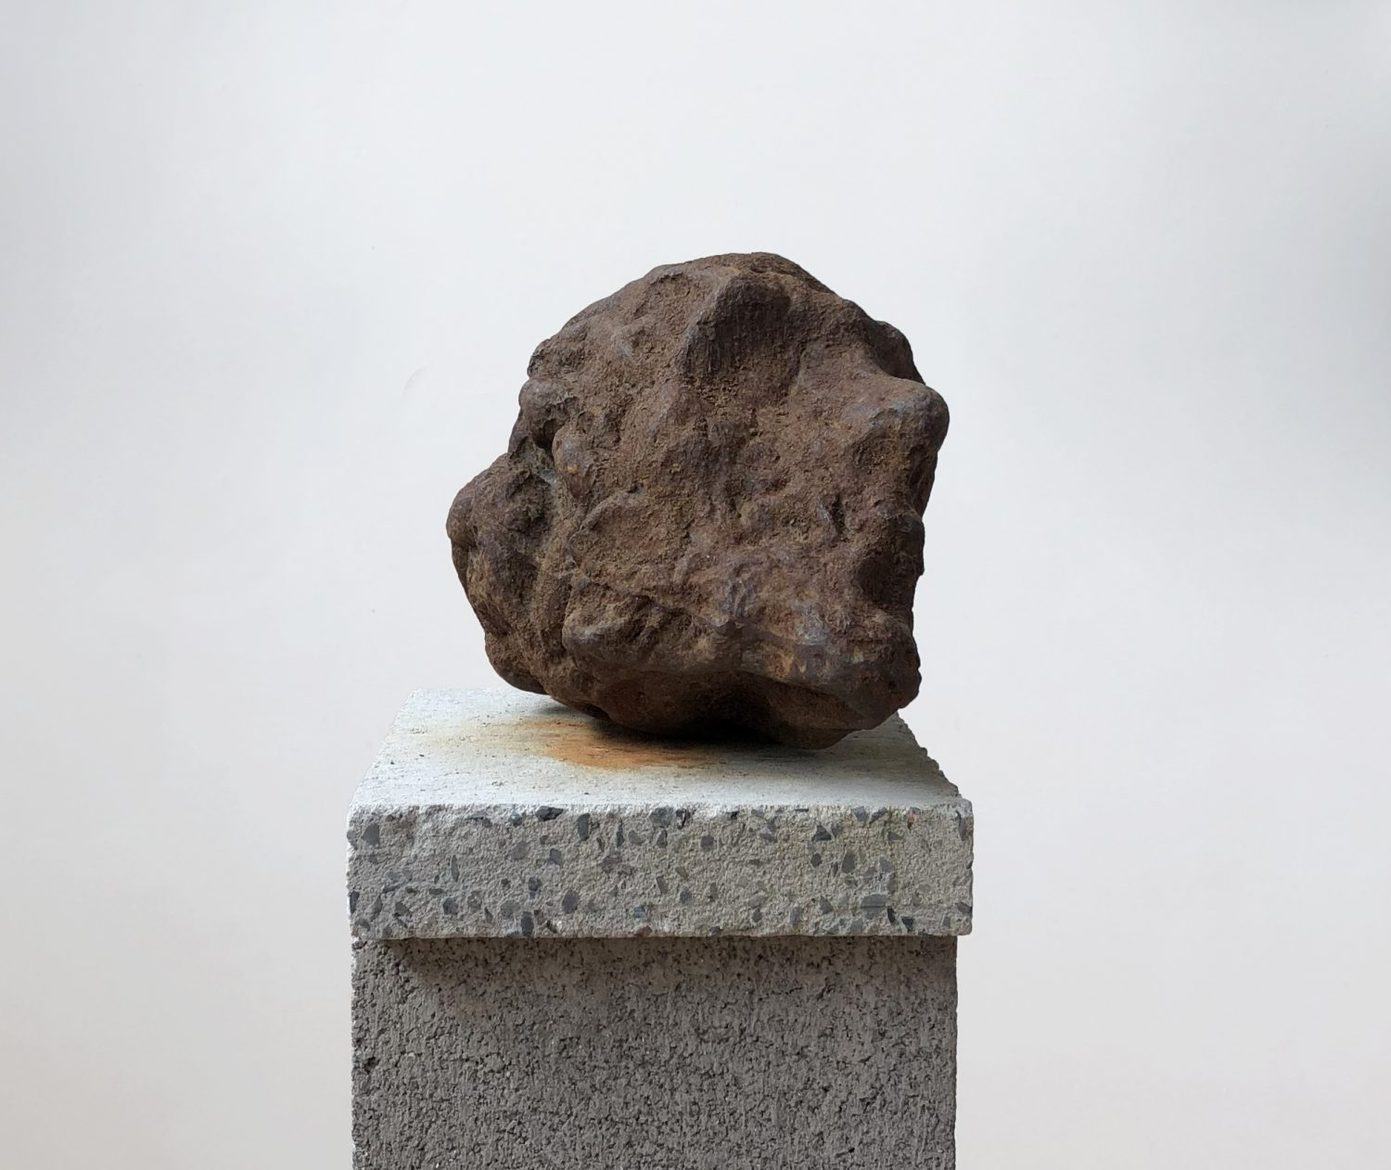 Gary Deirmendjian, 'the seasons iii', 2005, cast iron, 30 x 43 x 33 cm, unique